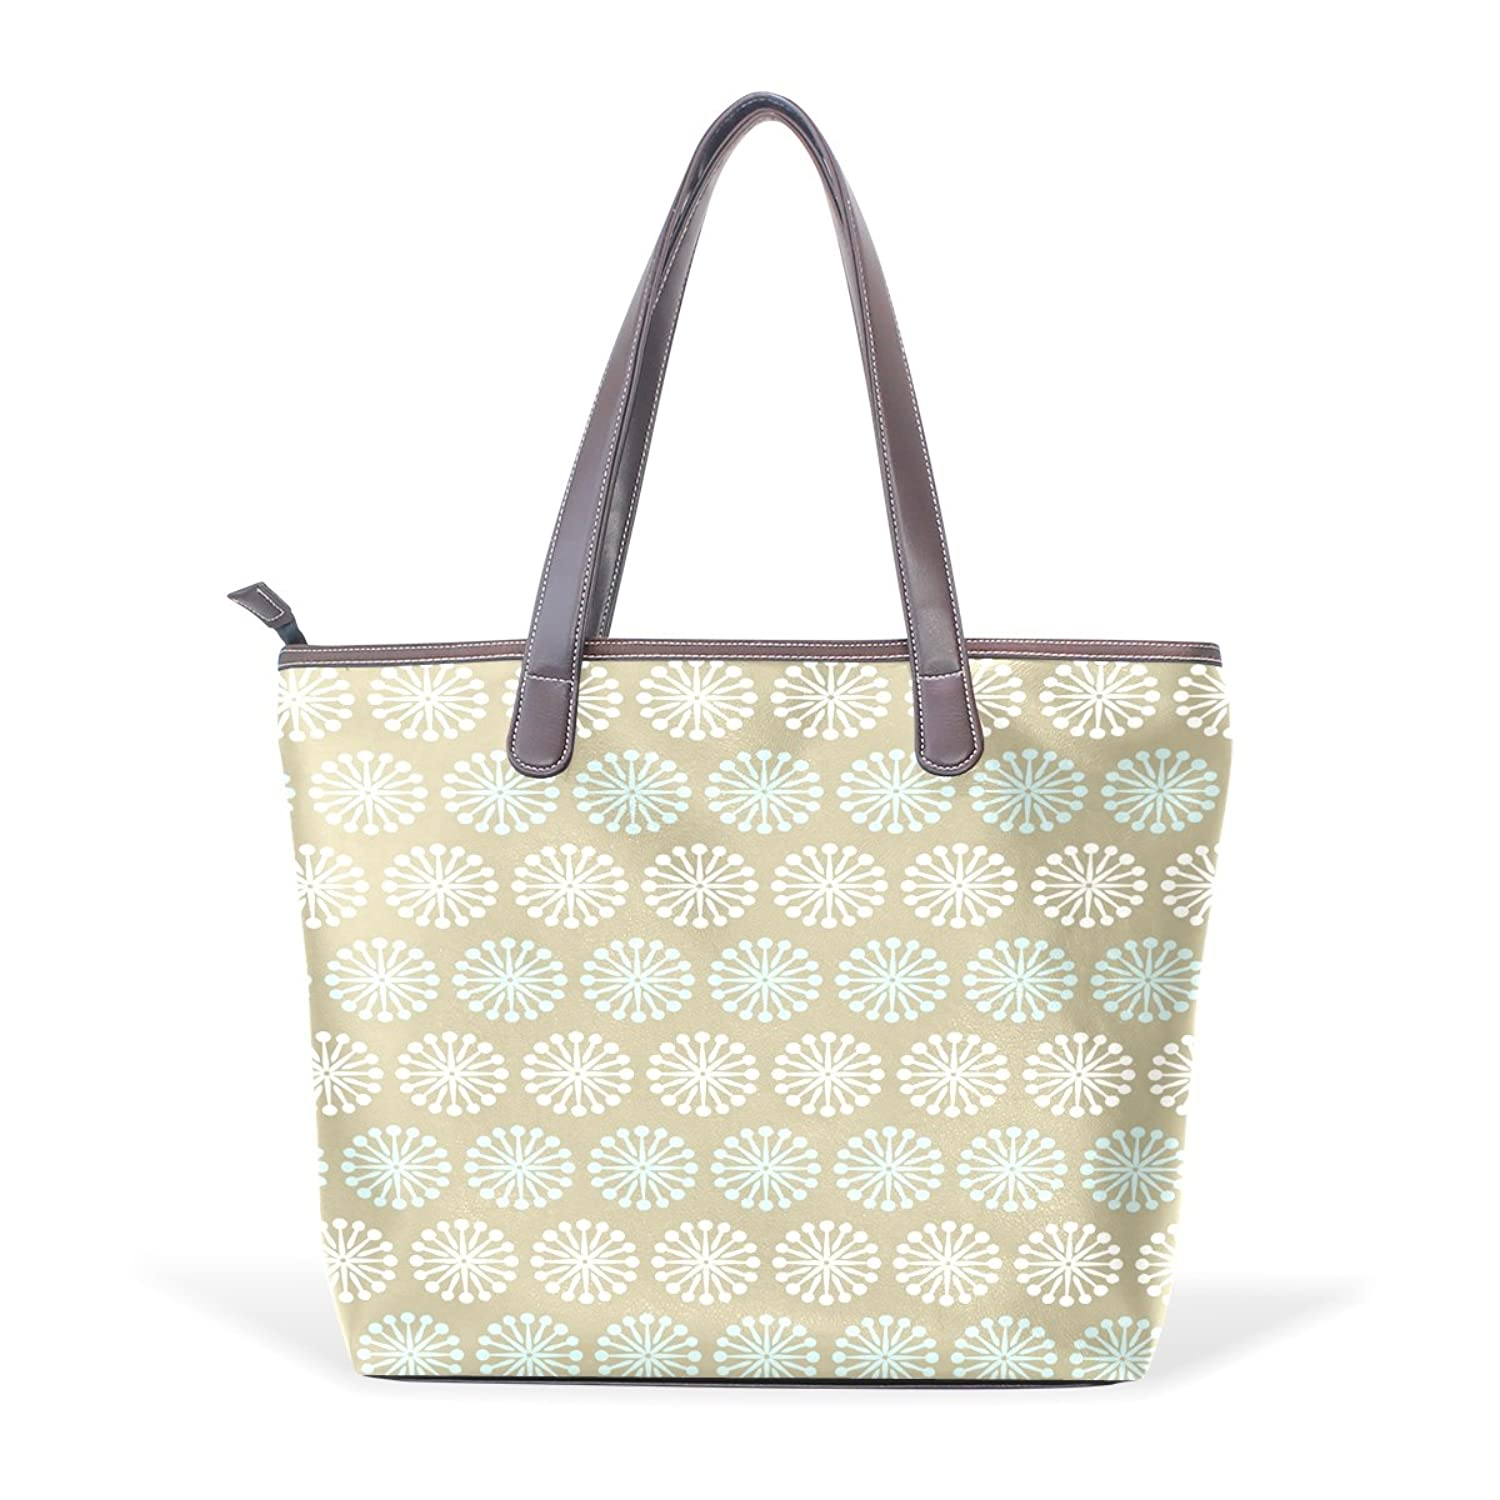 BYouLockX Blue And White Pattern With Brown Pattern Leather Handbags Satchel ShoulderBag for Women